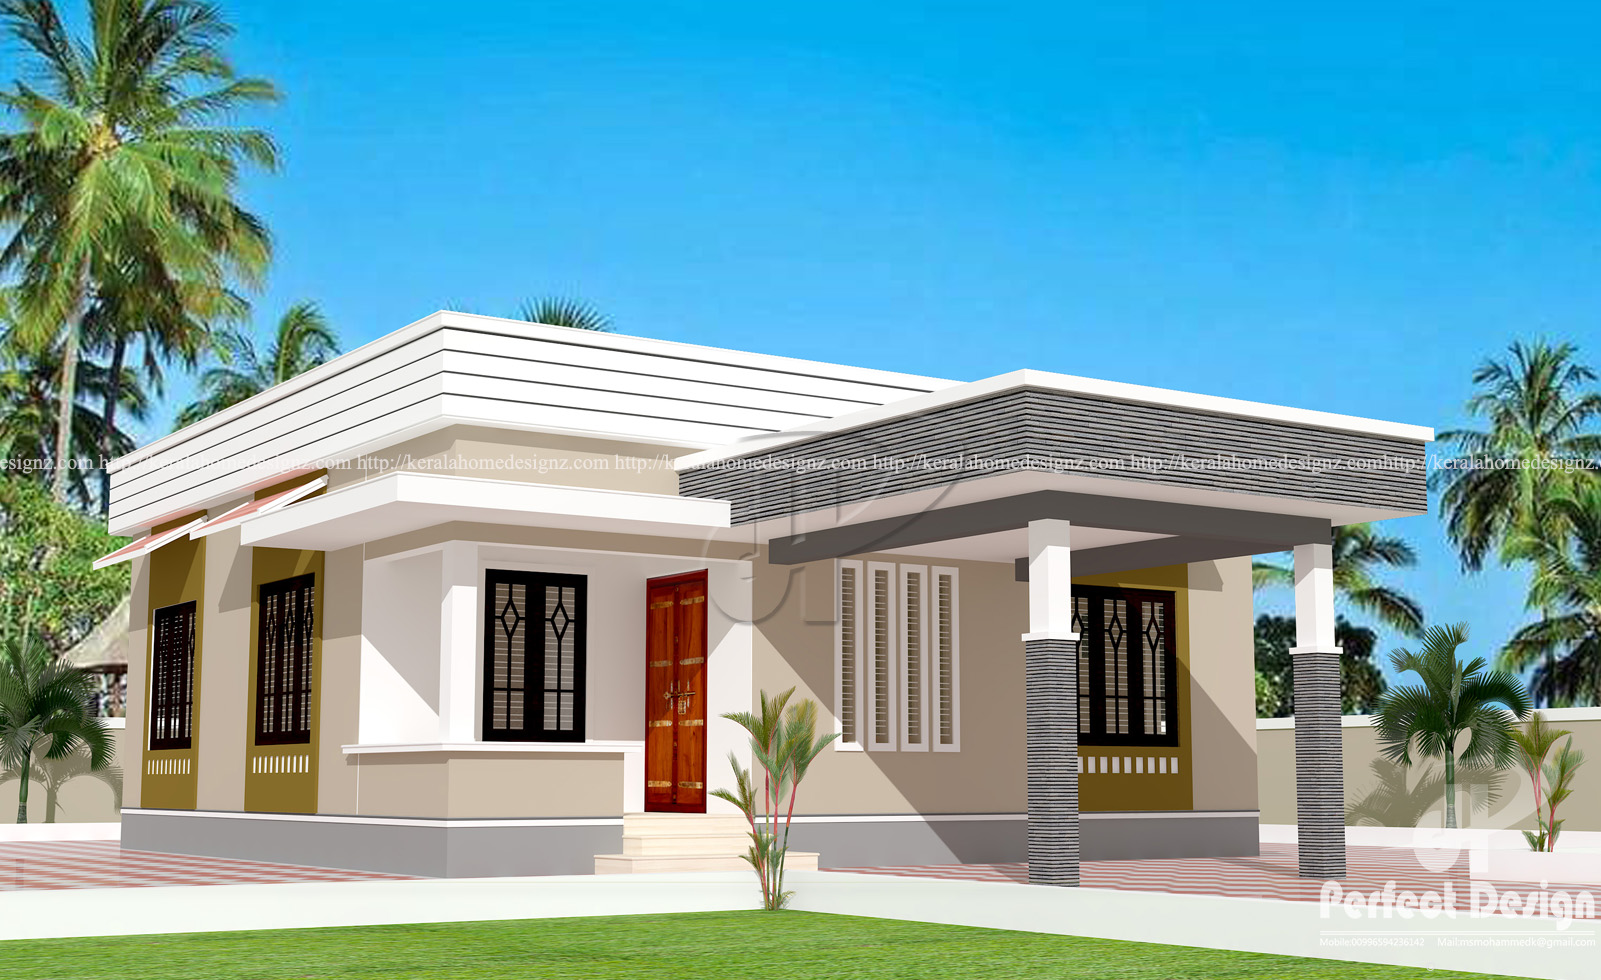 829 sq ft low cost home designs kerala home design for Tavoli design low cost